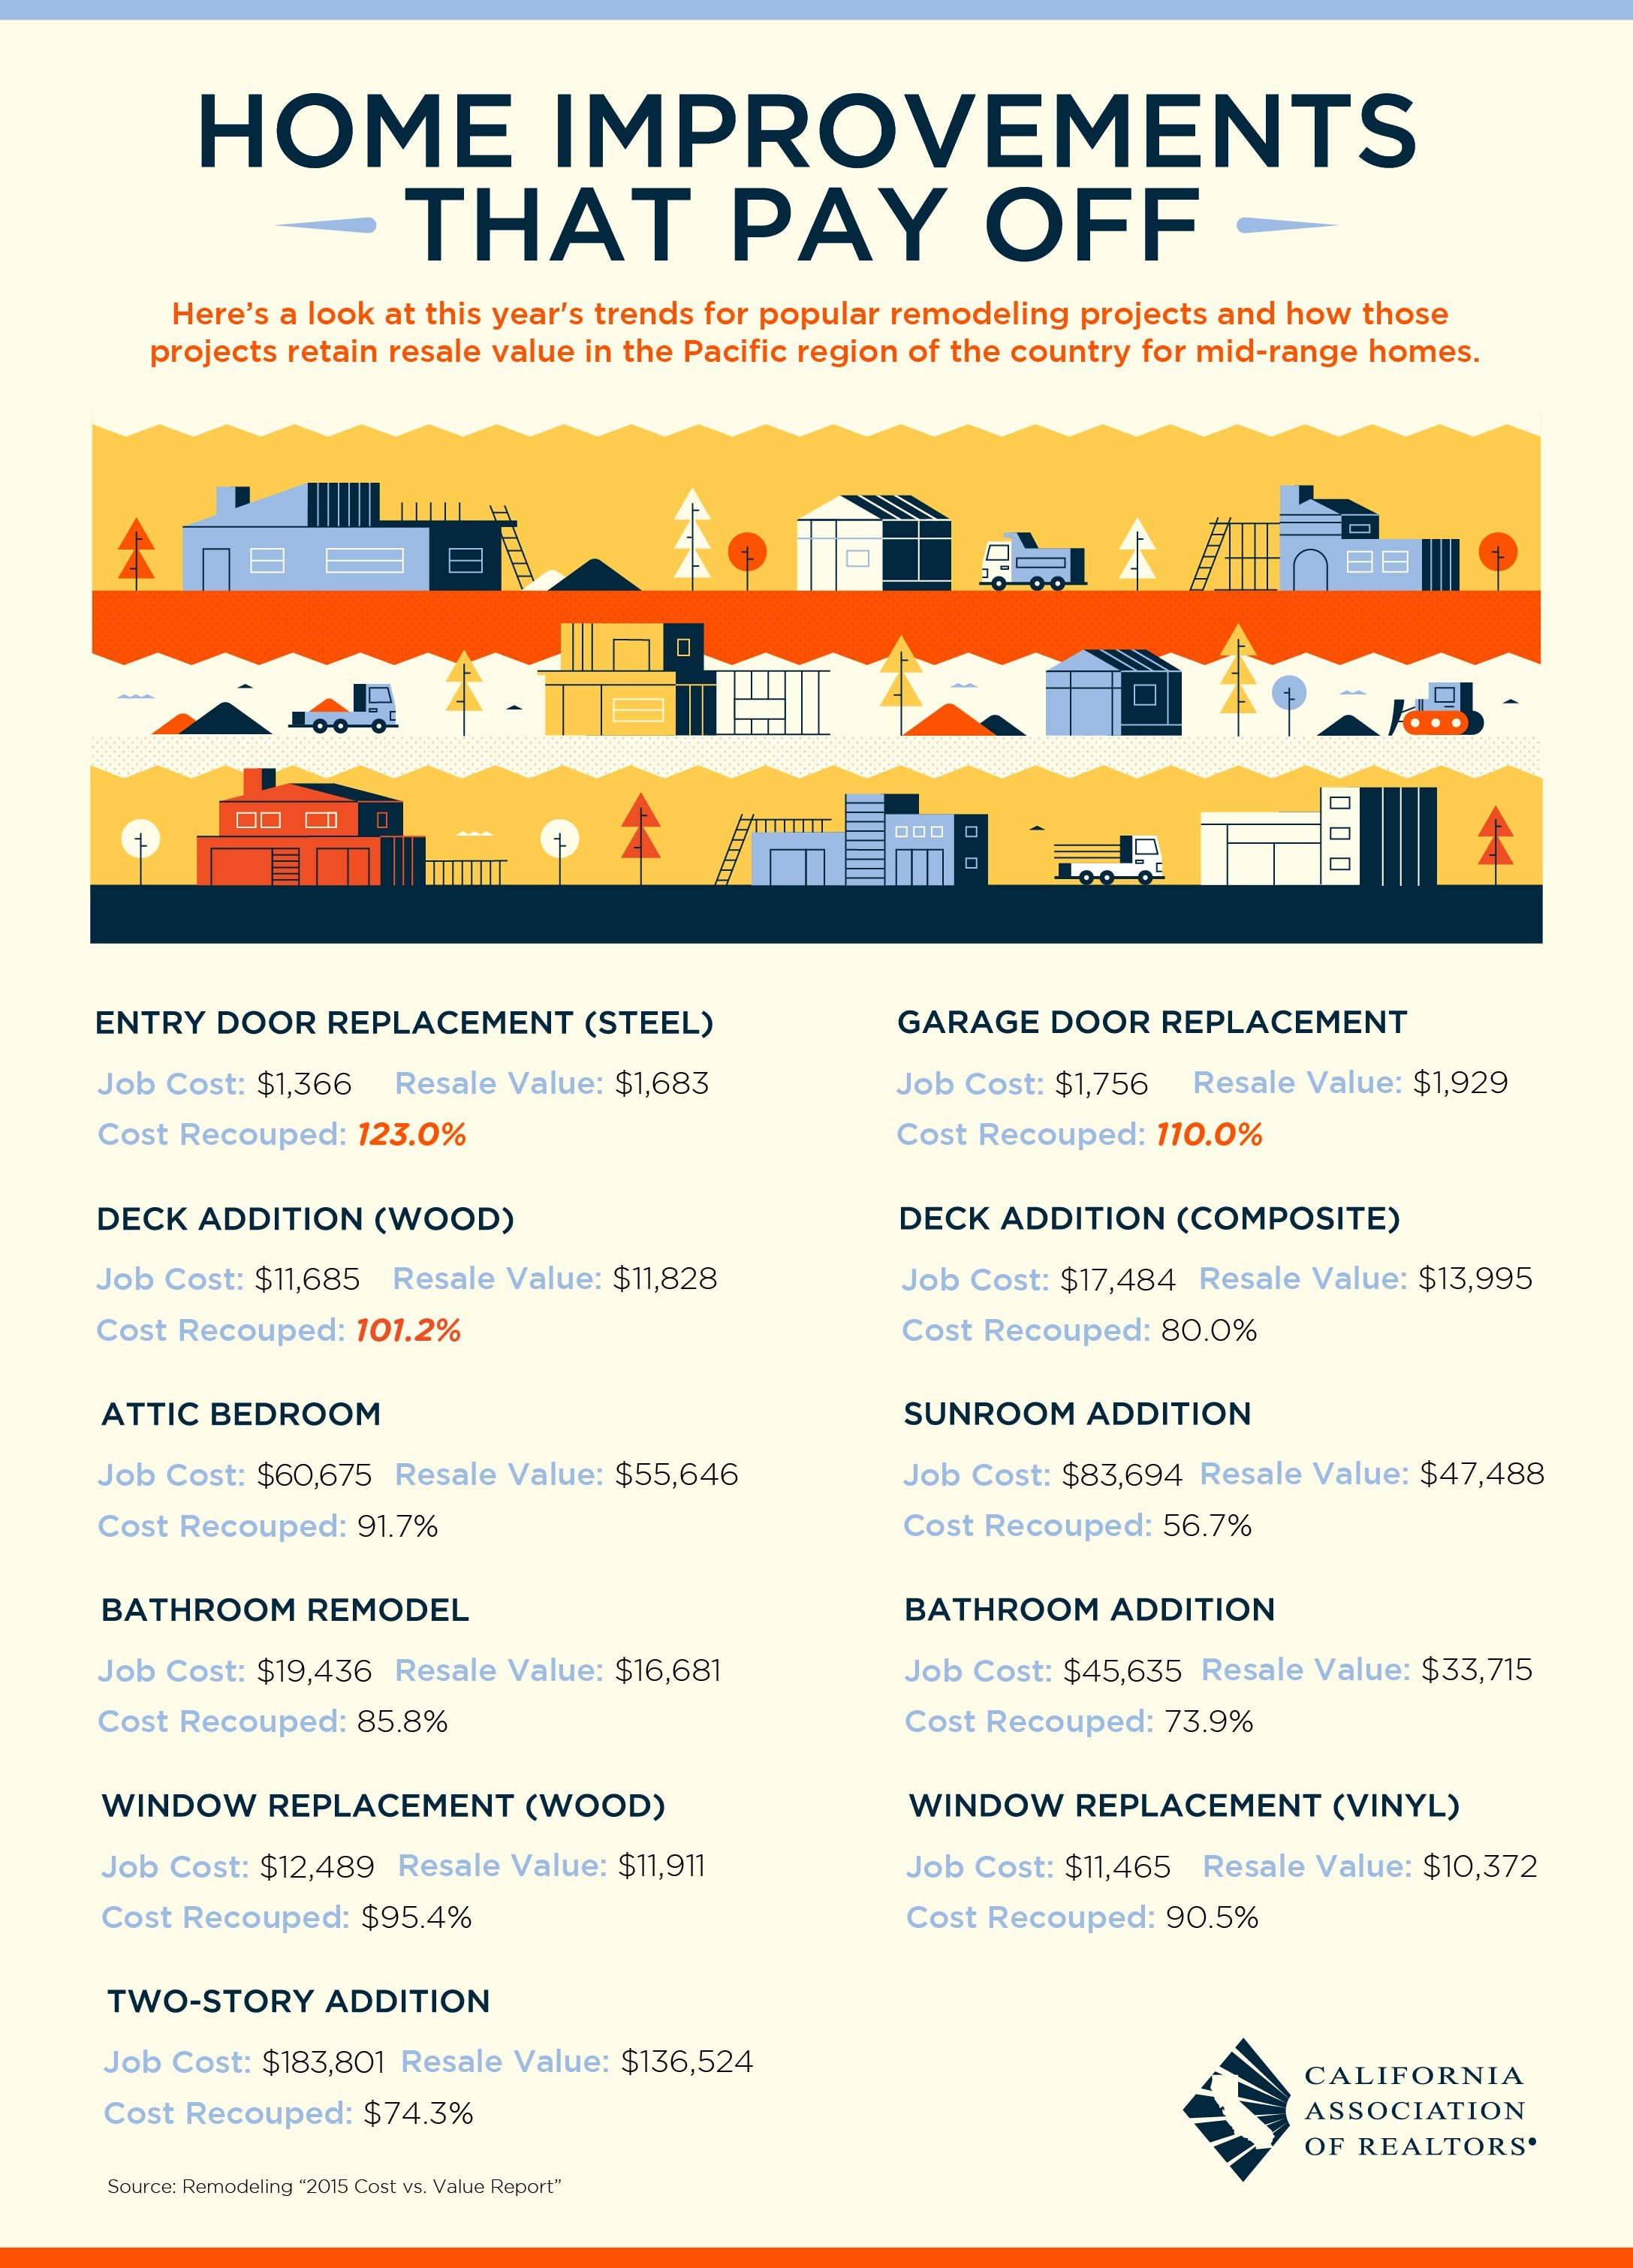 Boston Midtown and Beacon Hill improvements that pay off